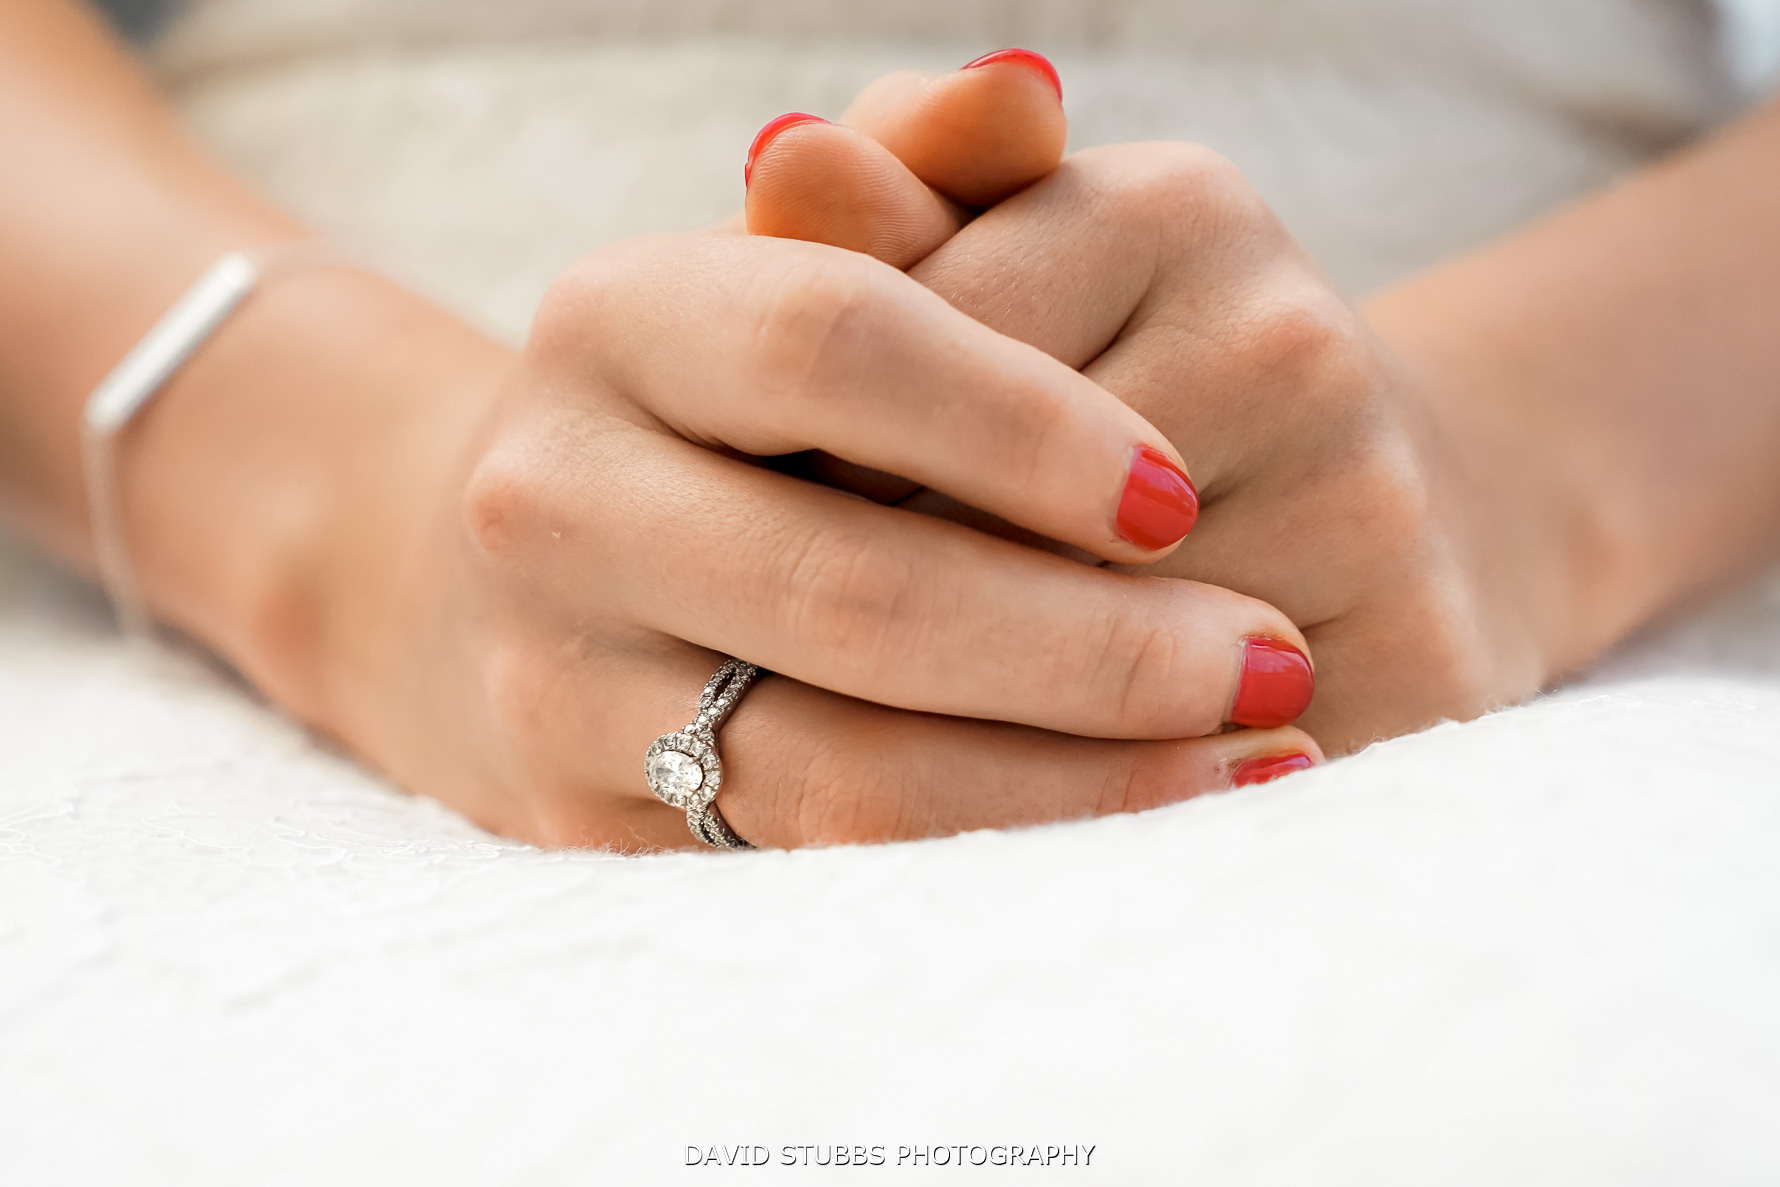 close-up photo of brides hands and wedding ring